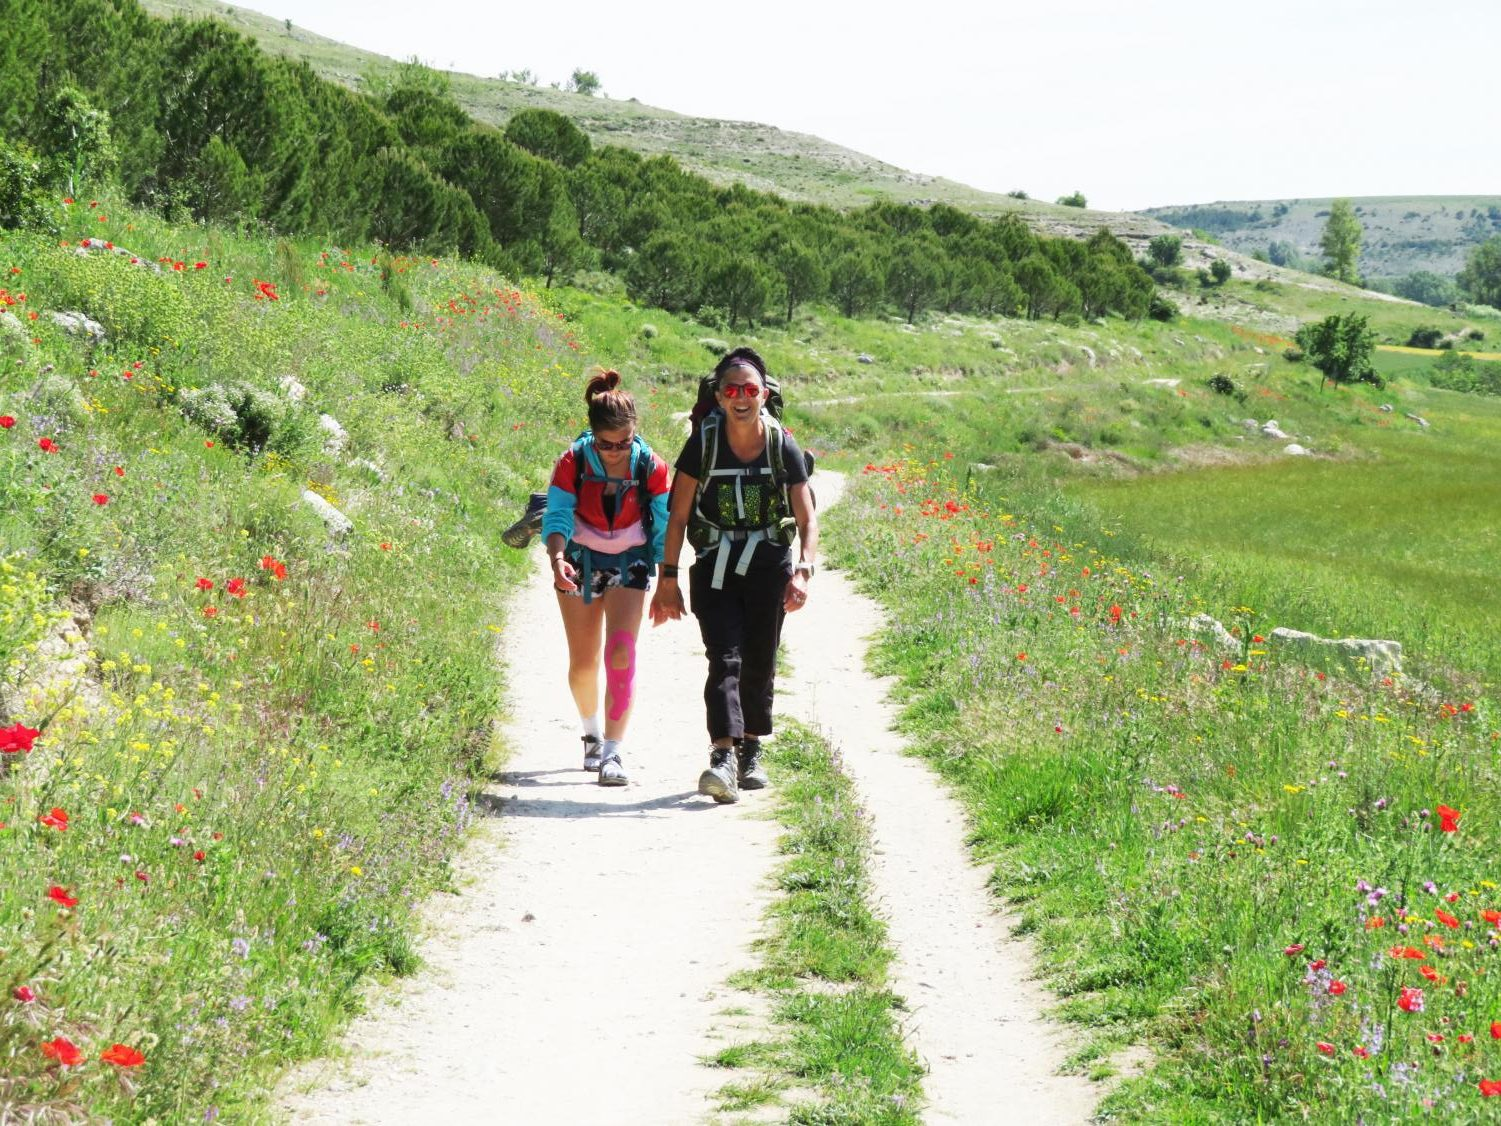 BACKPACKING BUDDIES: Erin Sweeney and her mother, Mary, hike through the Spanish meseta outside of  Burgos, Spain toward town.